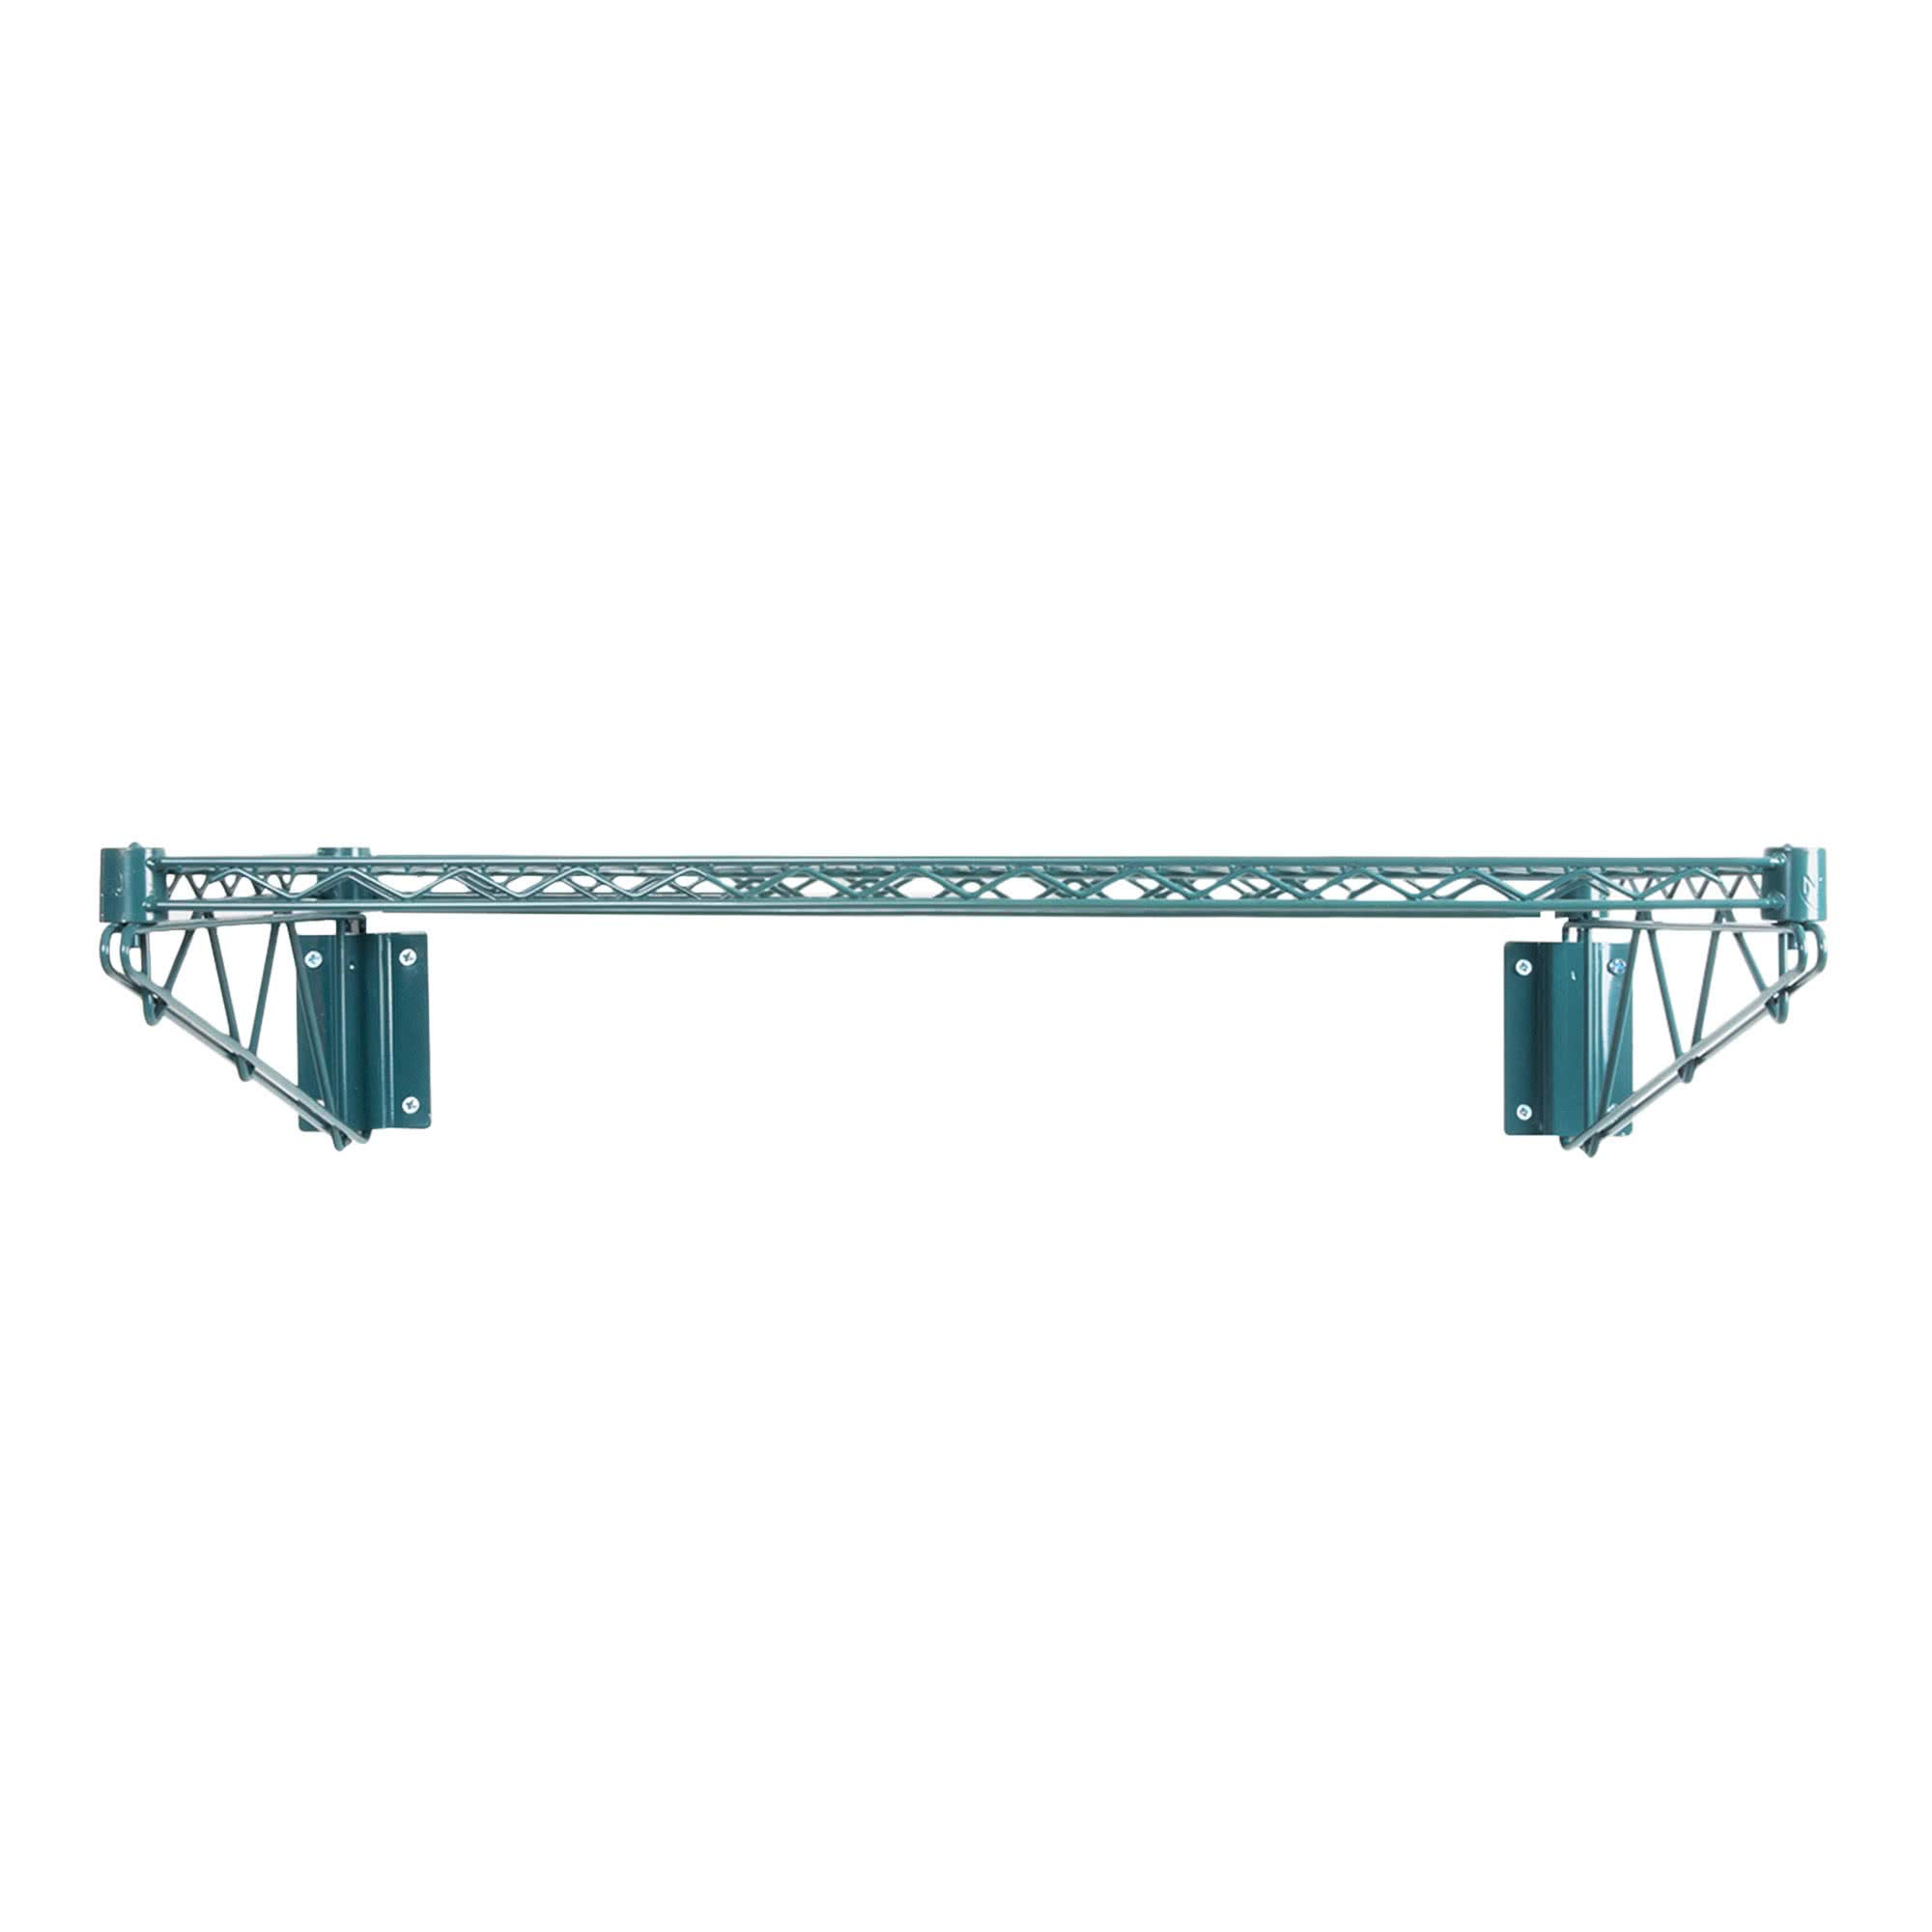 Green Epoxy Coated Wire Wall Mount Shelf 24 x 60 - NSF - Commercial by KPS (Image #3)